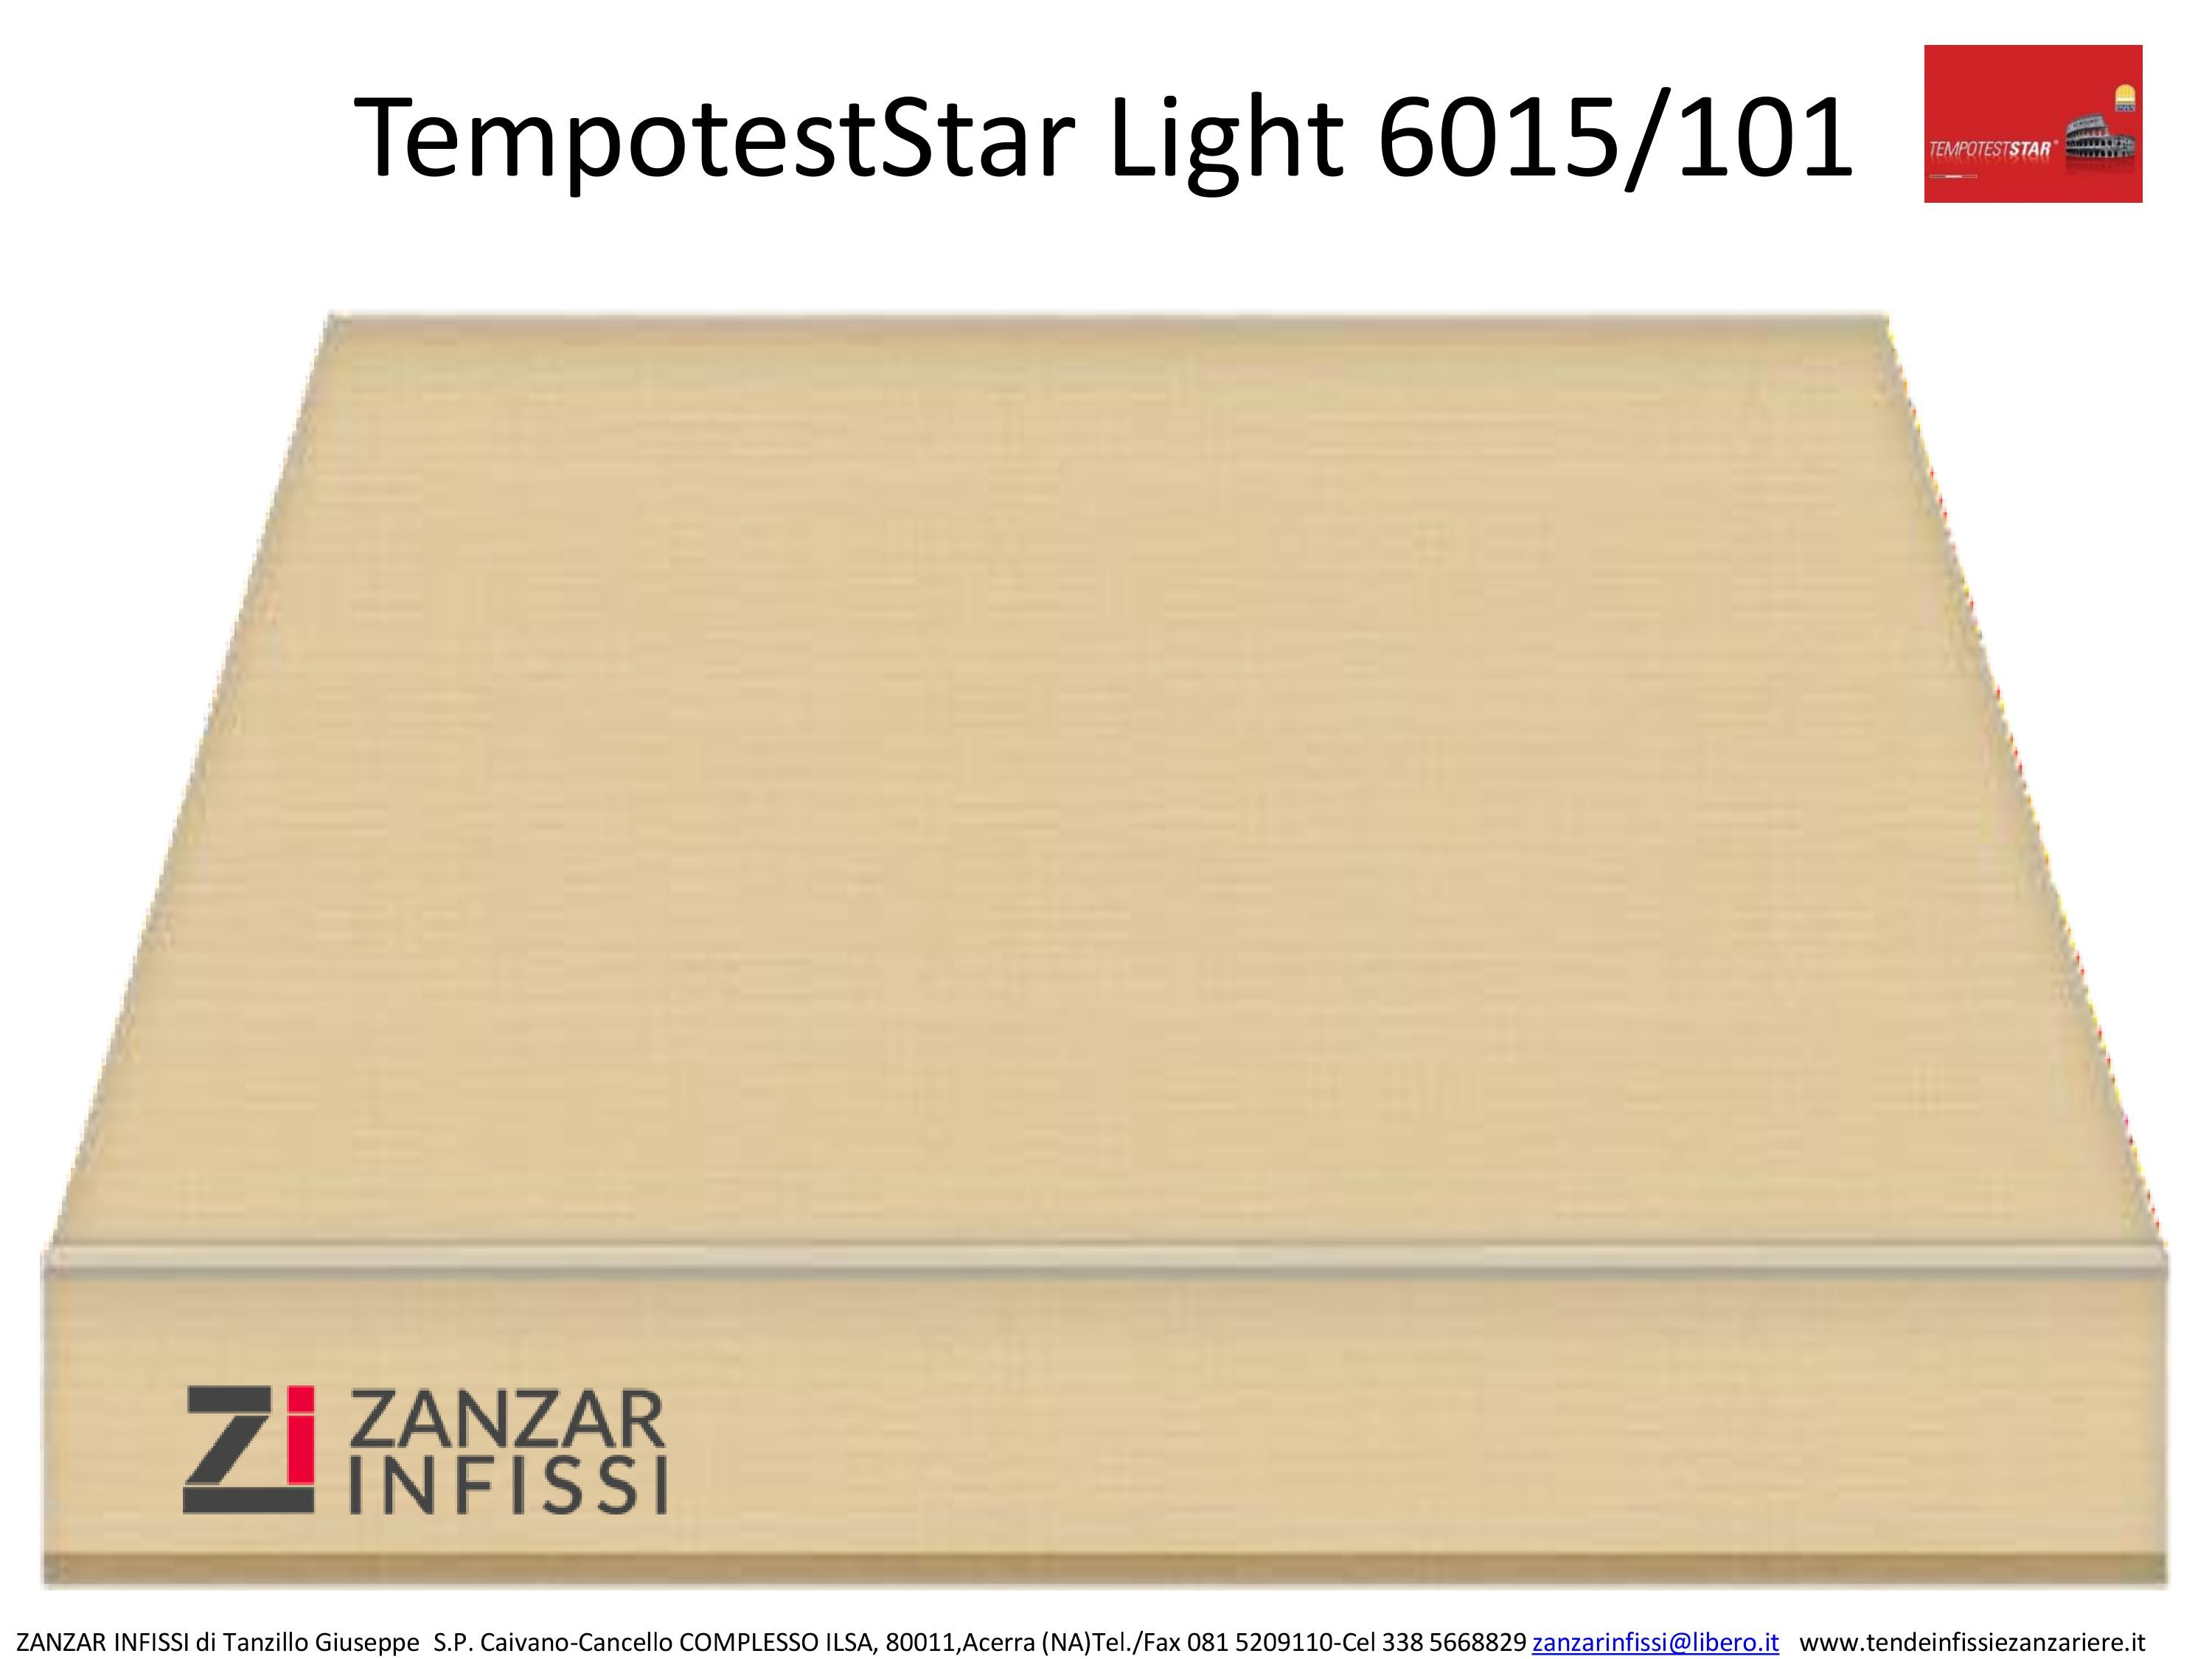 Tempotest star light 6015/101